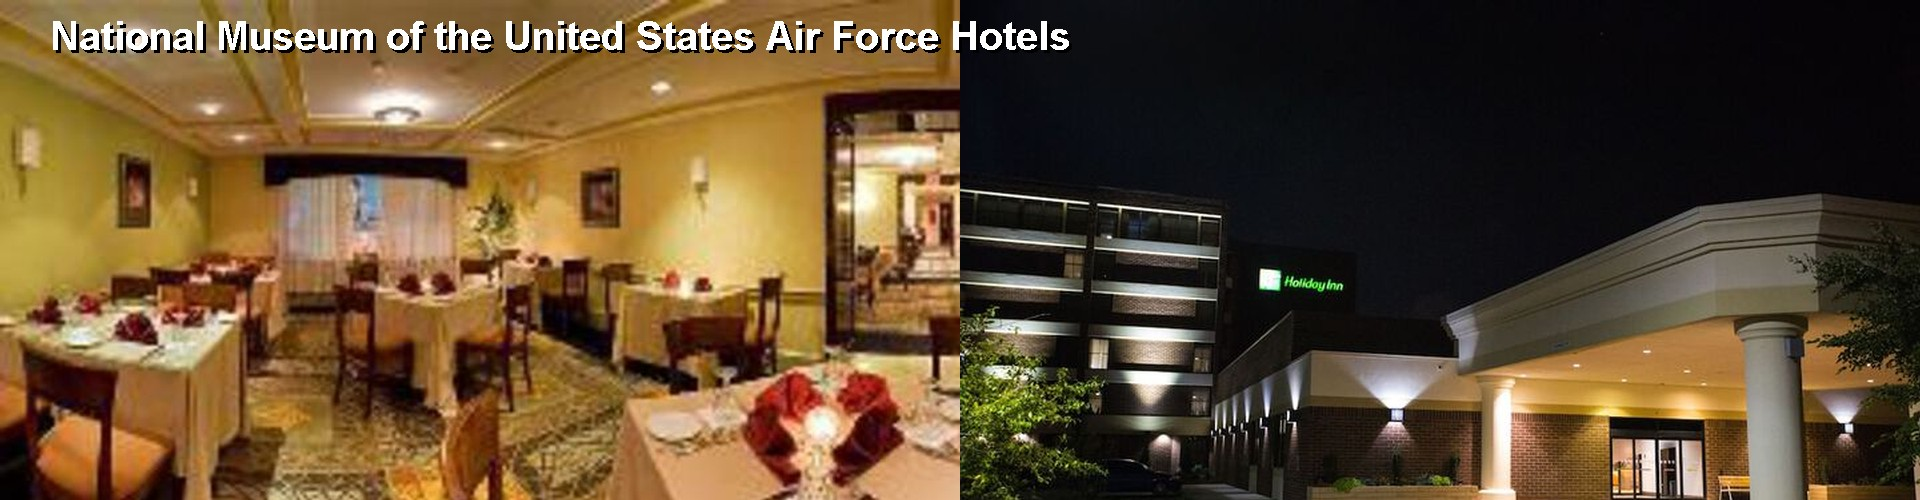 5 Best Hotels near National Museum of the United States Air Force